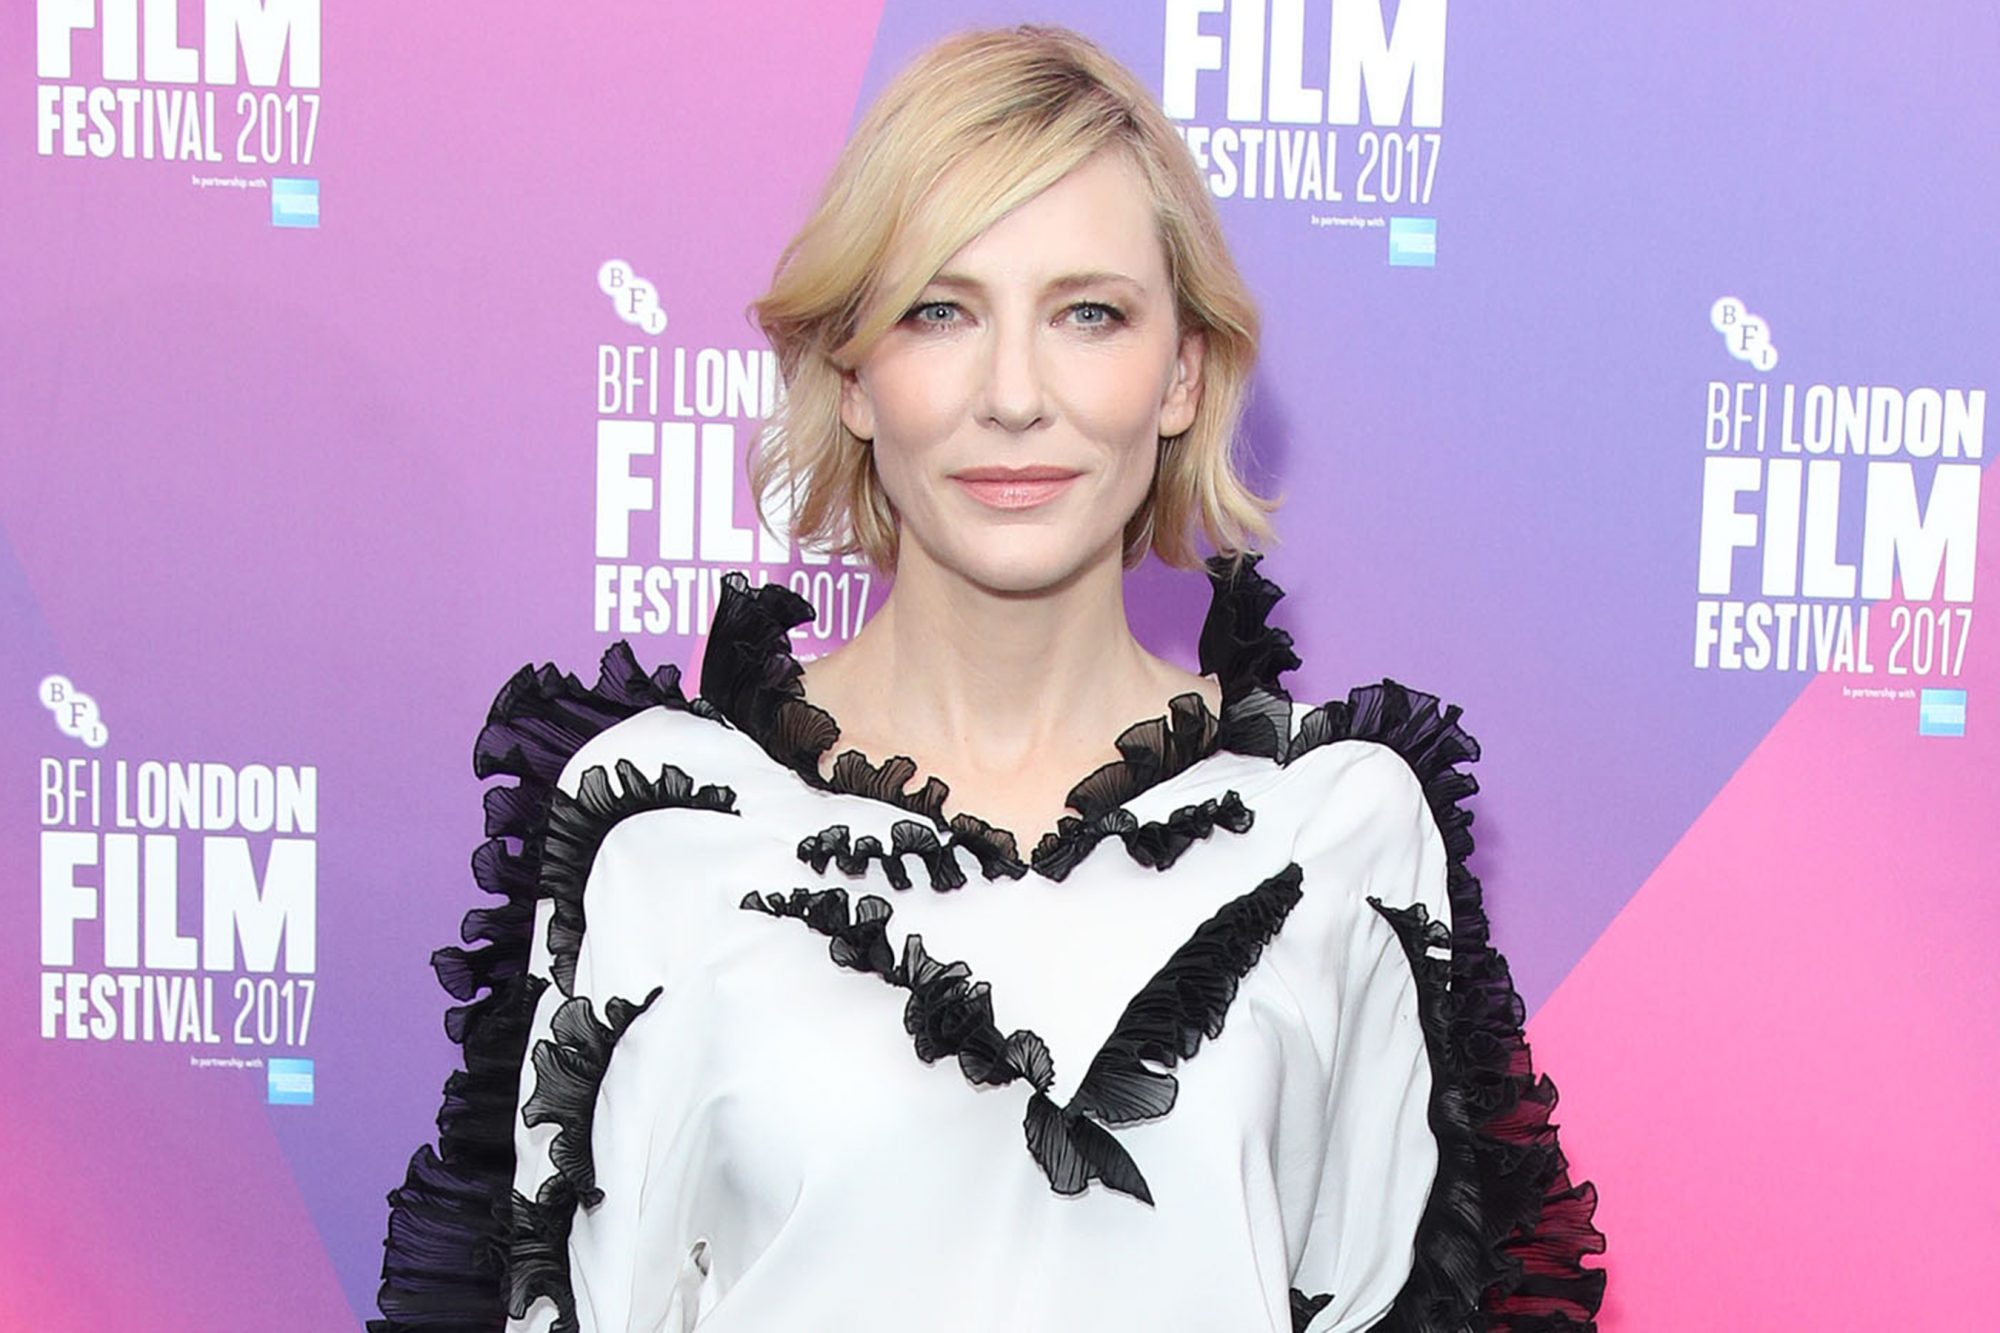 LFF Connects: Julian Rosefeldt & Cate Blanchett - 61st BFI London Film Festival